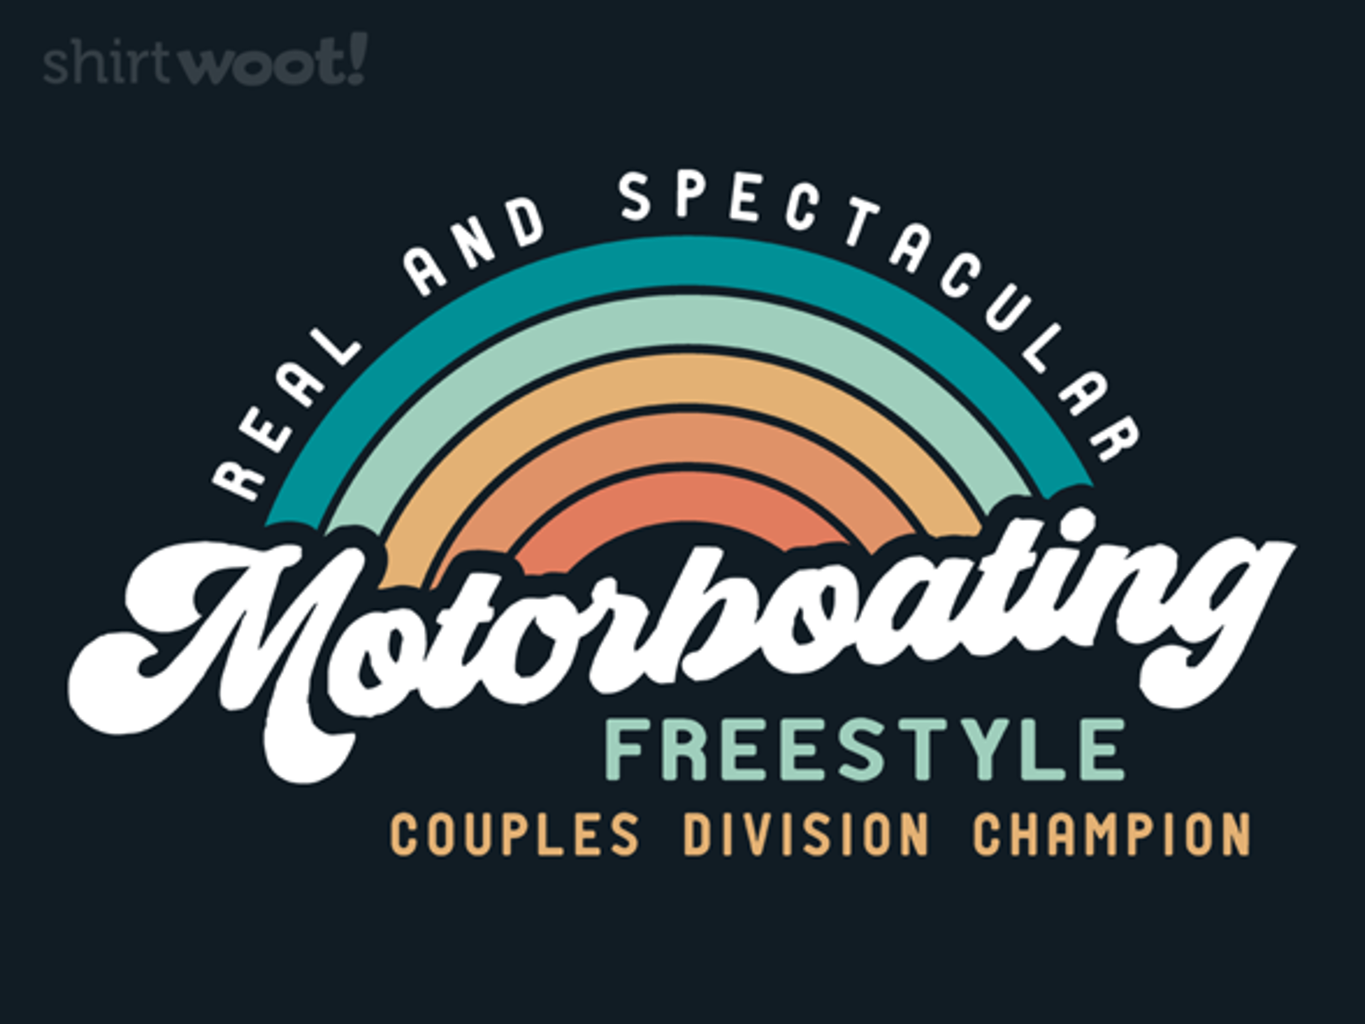 Woot!: Real and Spectacular